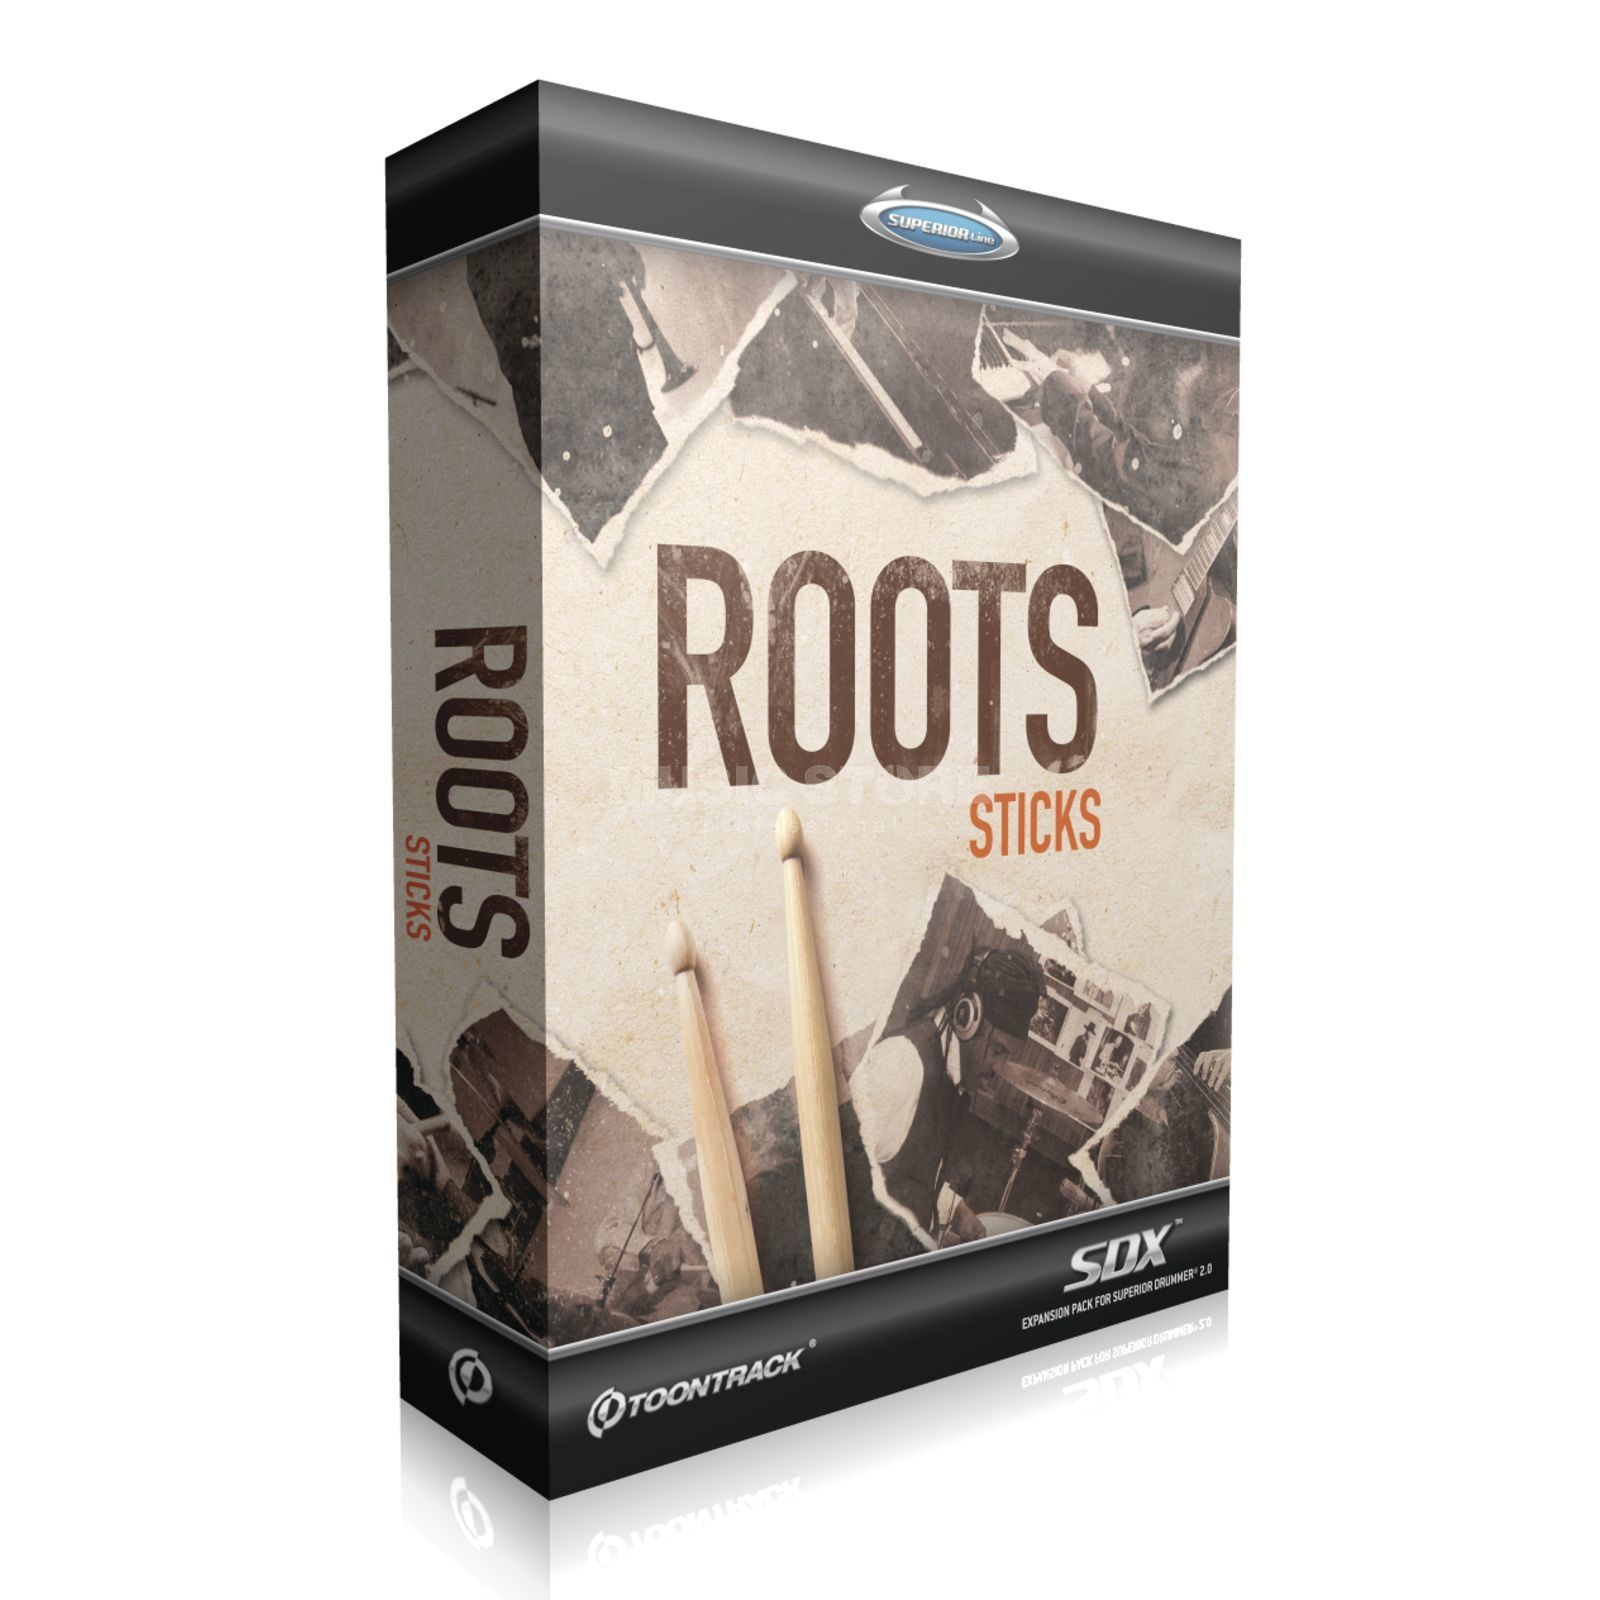 Toontrack Roots: Sticks SDX Expansion Pa ck   Product Image